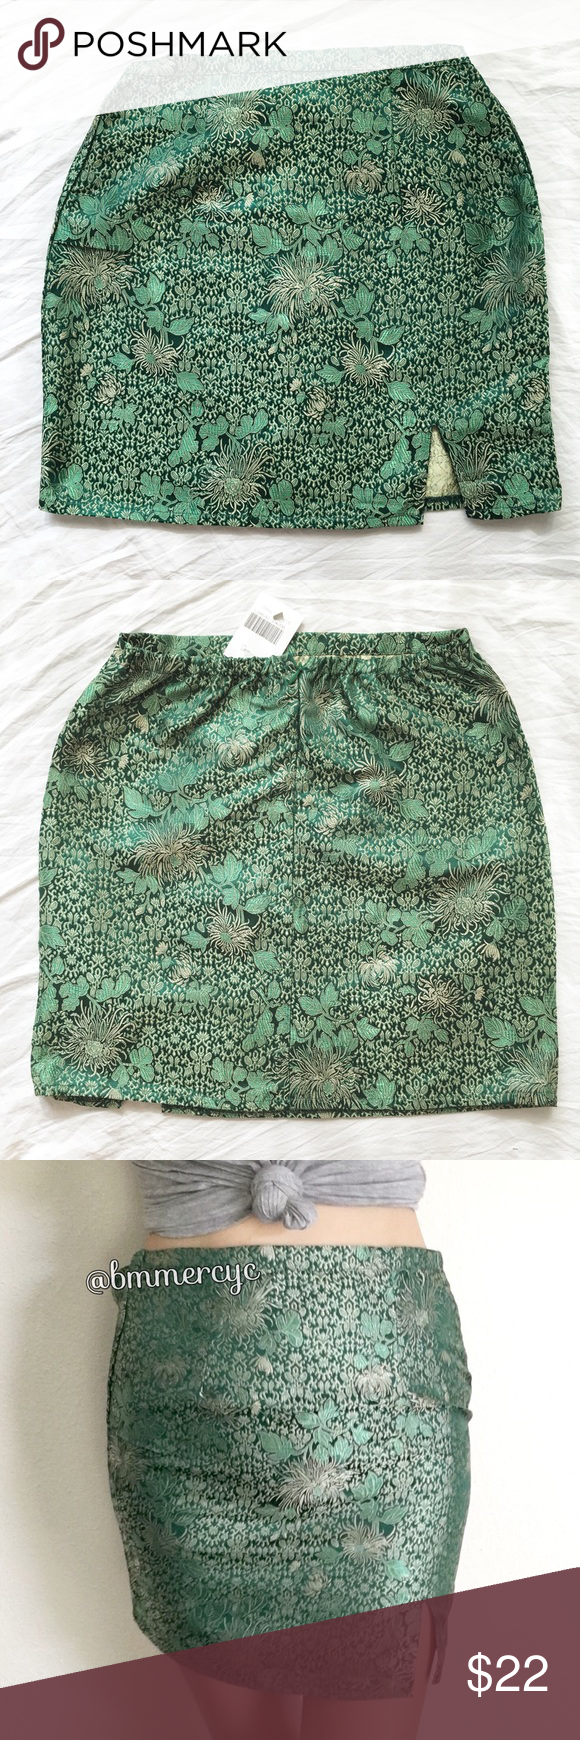 "BNWT green Chinese silky Moss skirt Size: xs/s/24/25 15"" length, 17.5"" hip, 11.5"" waist (stretchy)  Silky Chinese floral print skirt in green and gold with an elasticized waist, hidden zipper opening in the back and a front slit. Retail at $26  ❌ Lowballers will be blocked 👋🏻 Brandy Melville Skirts Mini"